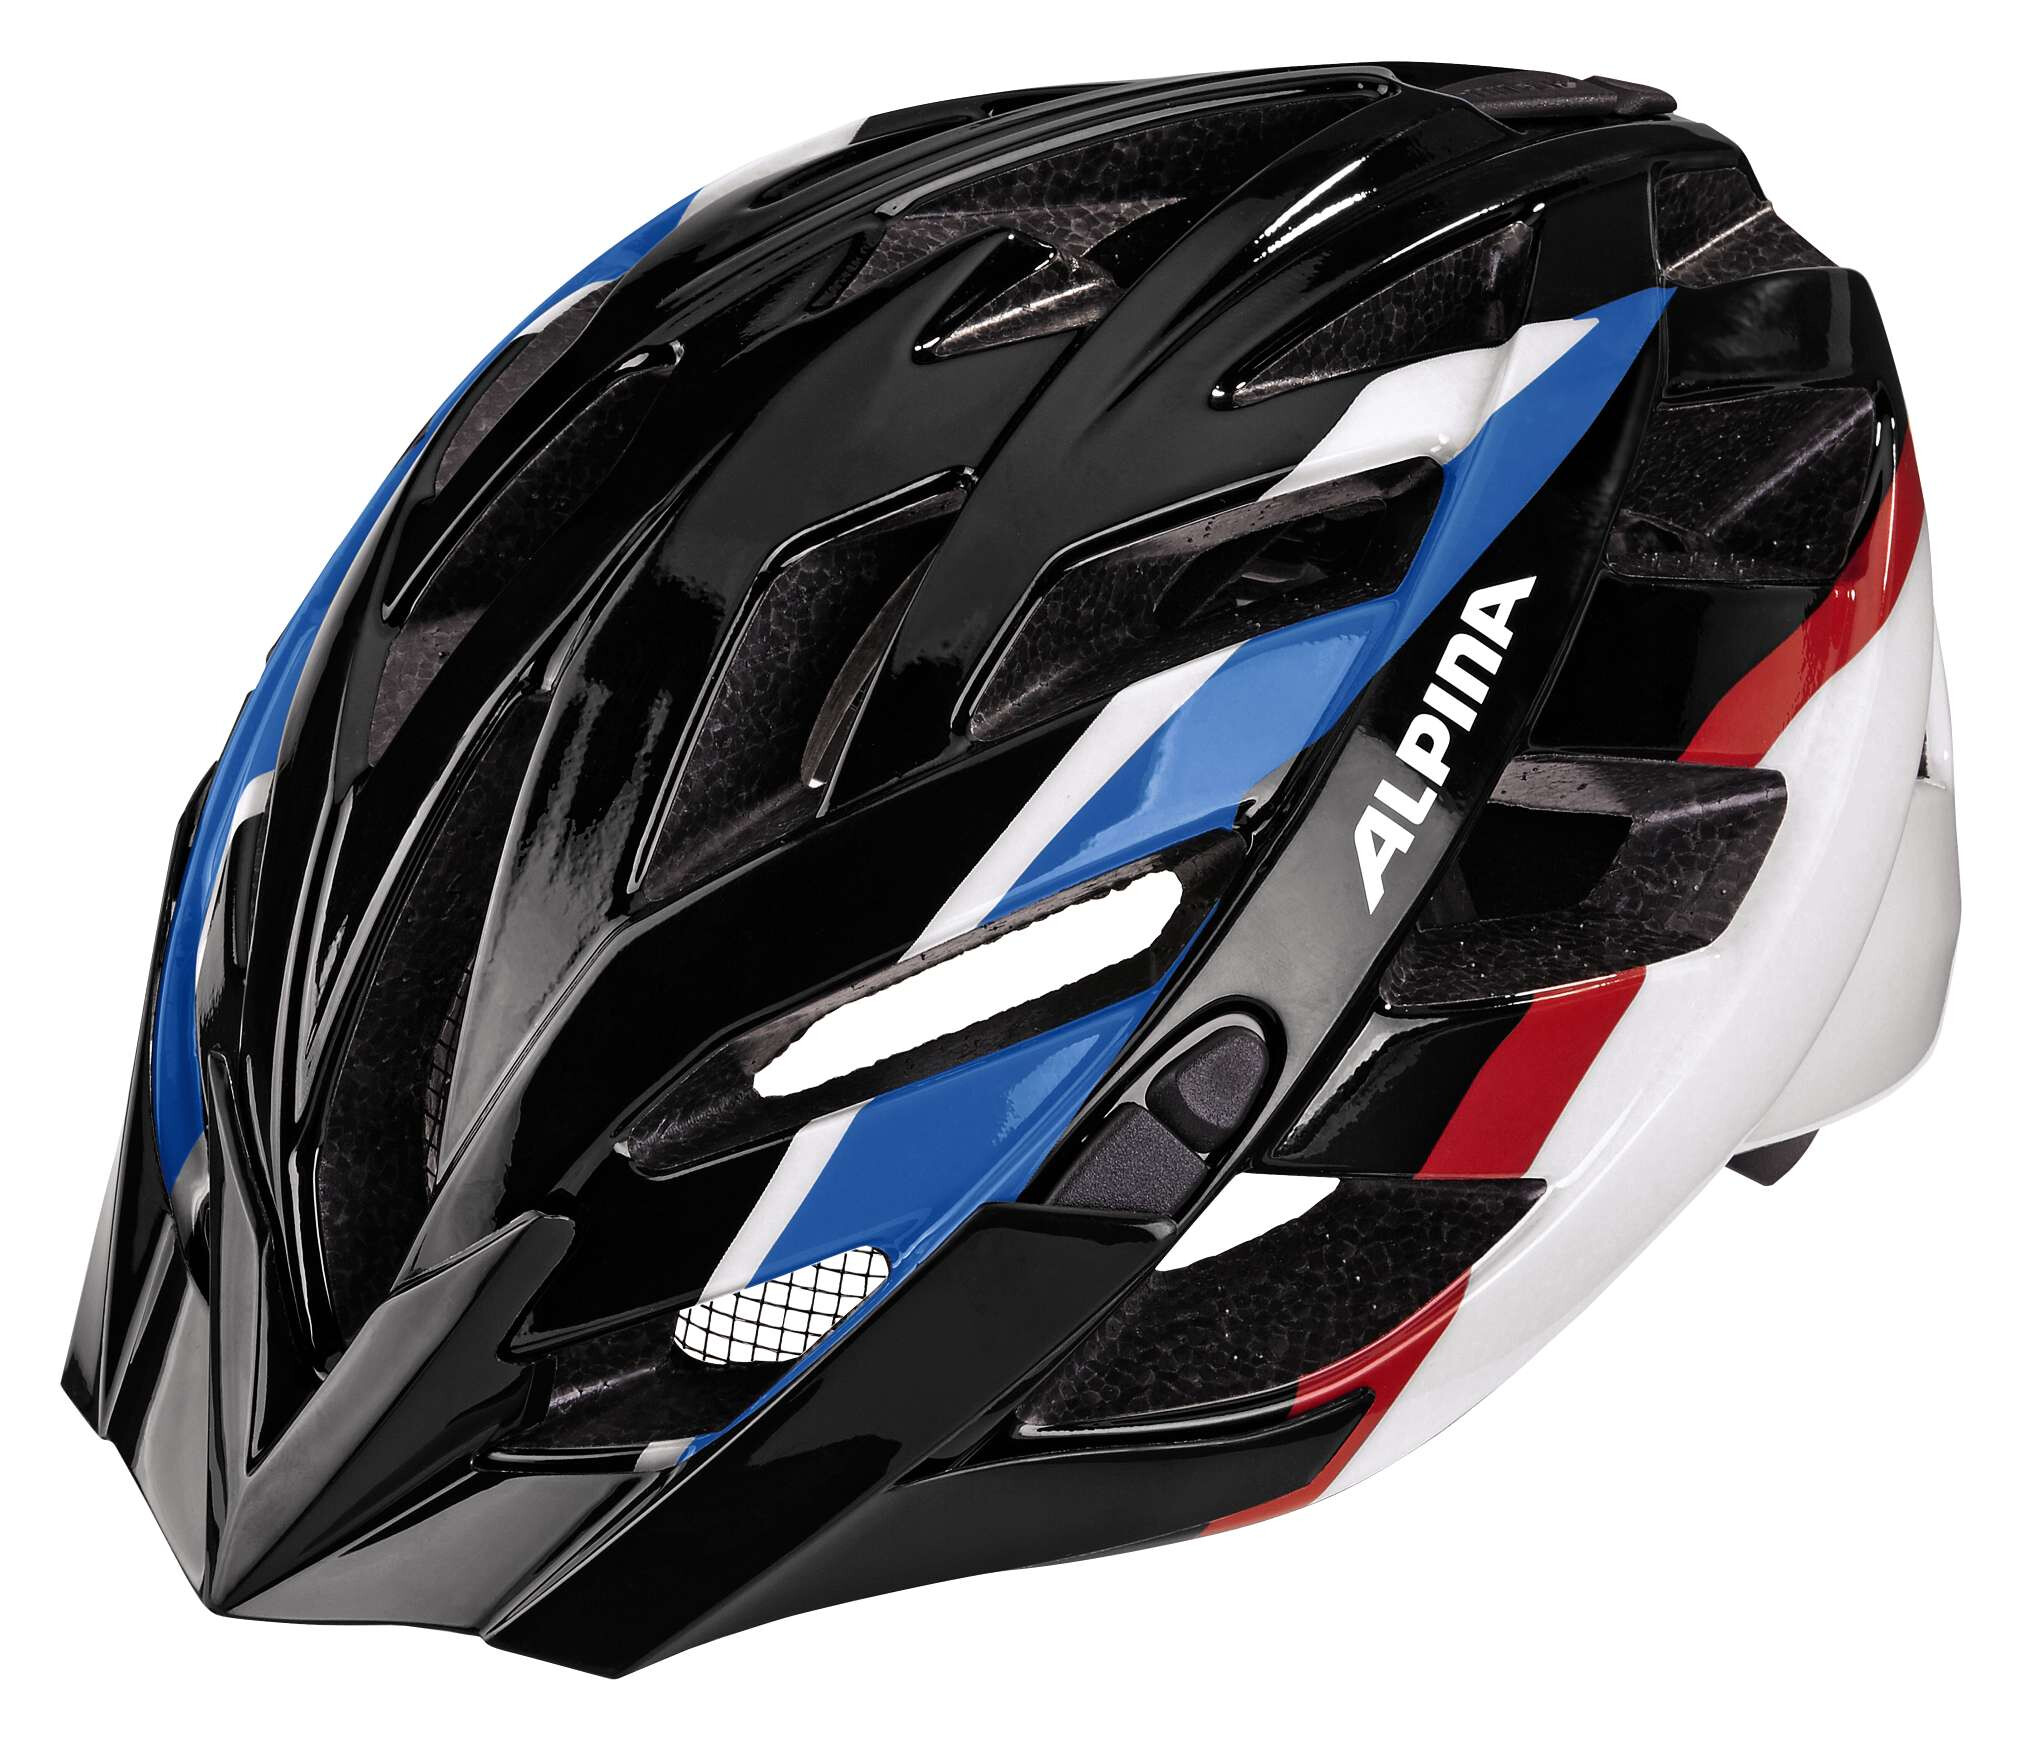 Https Sixpack Millenium 785 Lenker Oe35mm Baselayer Respiro Alpina Panoma Helmet Black Blue Red